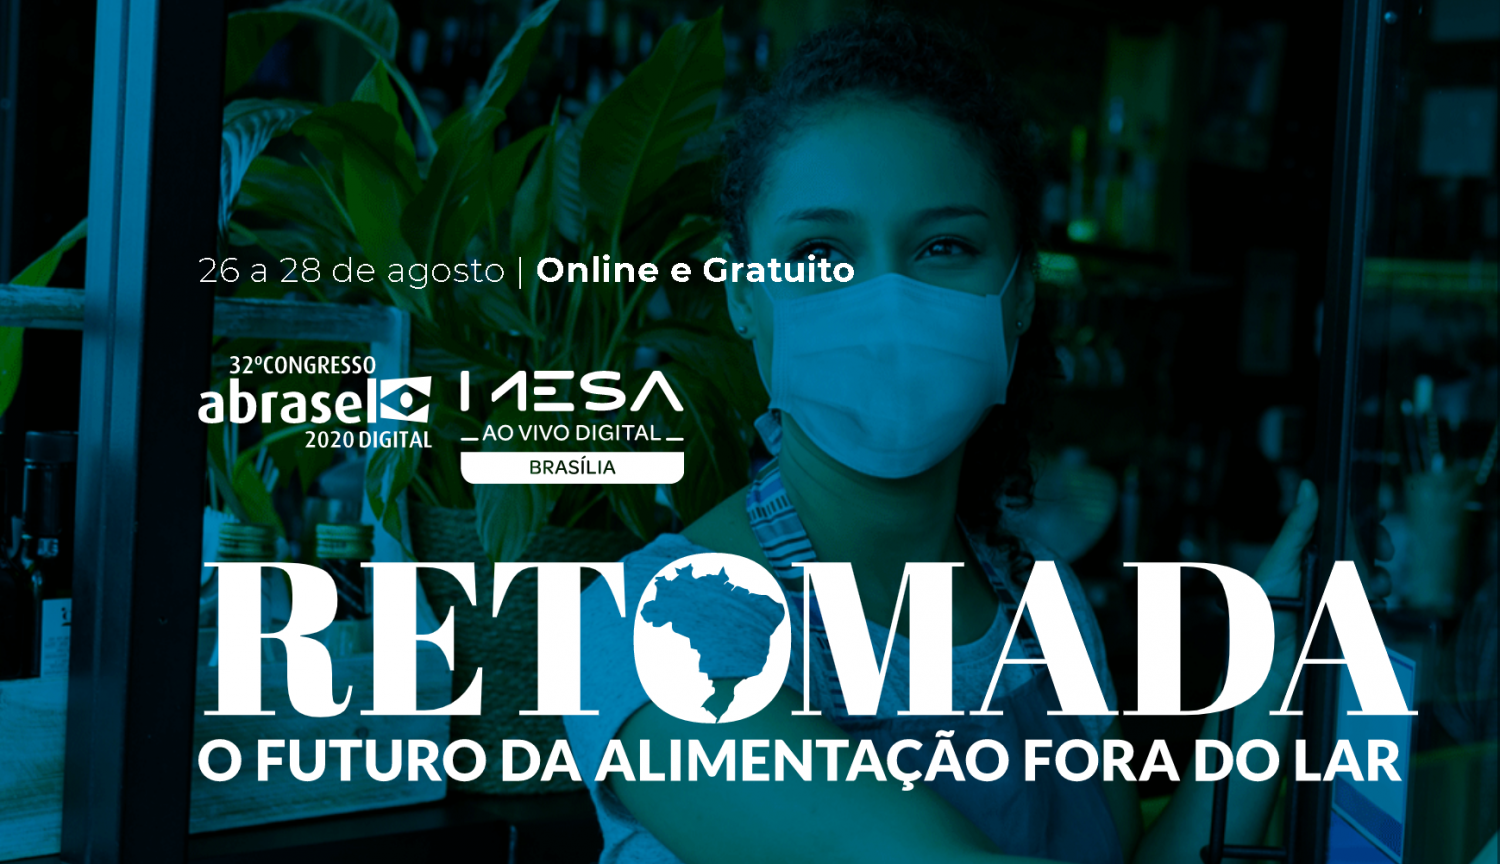 Congresso Abrasel 2020 Digital - eeCoo sustentabilidade - eeCoo participa do Congresso Abrasel 2020 digital